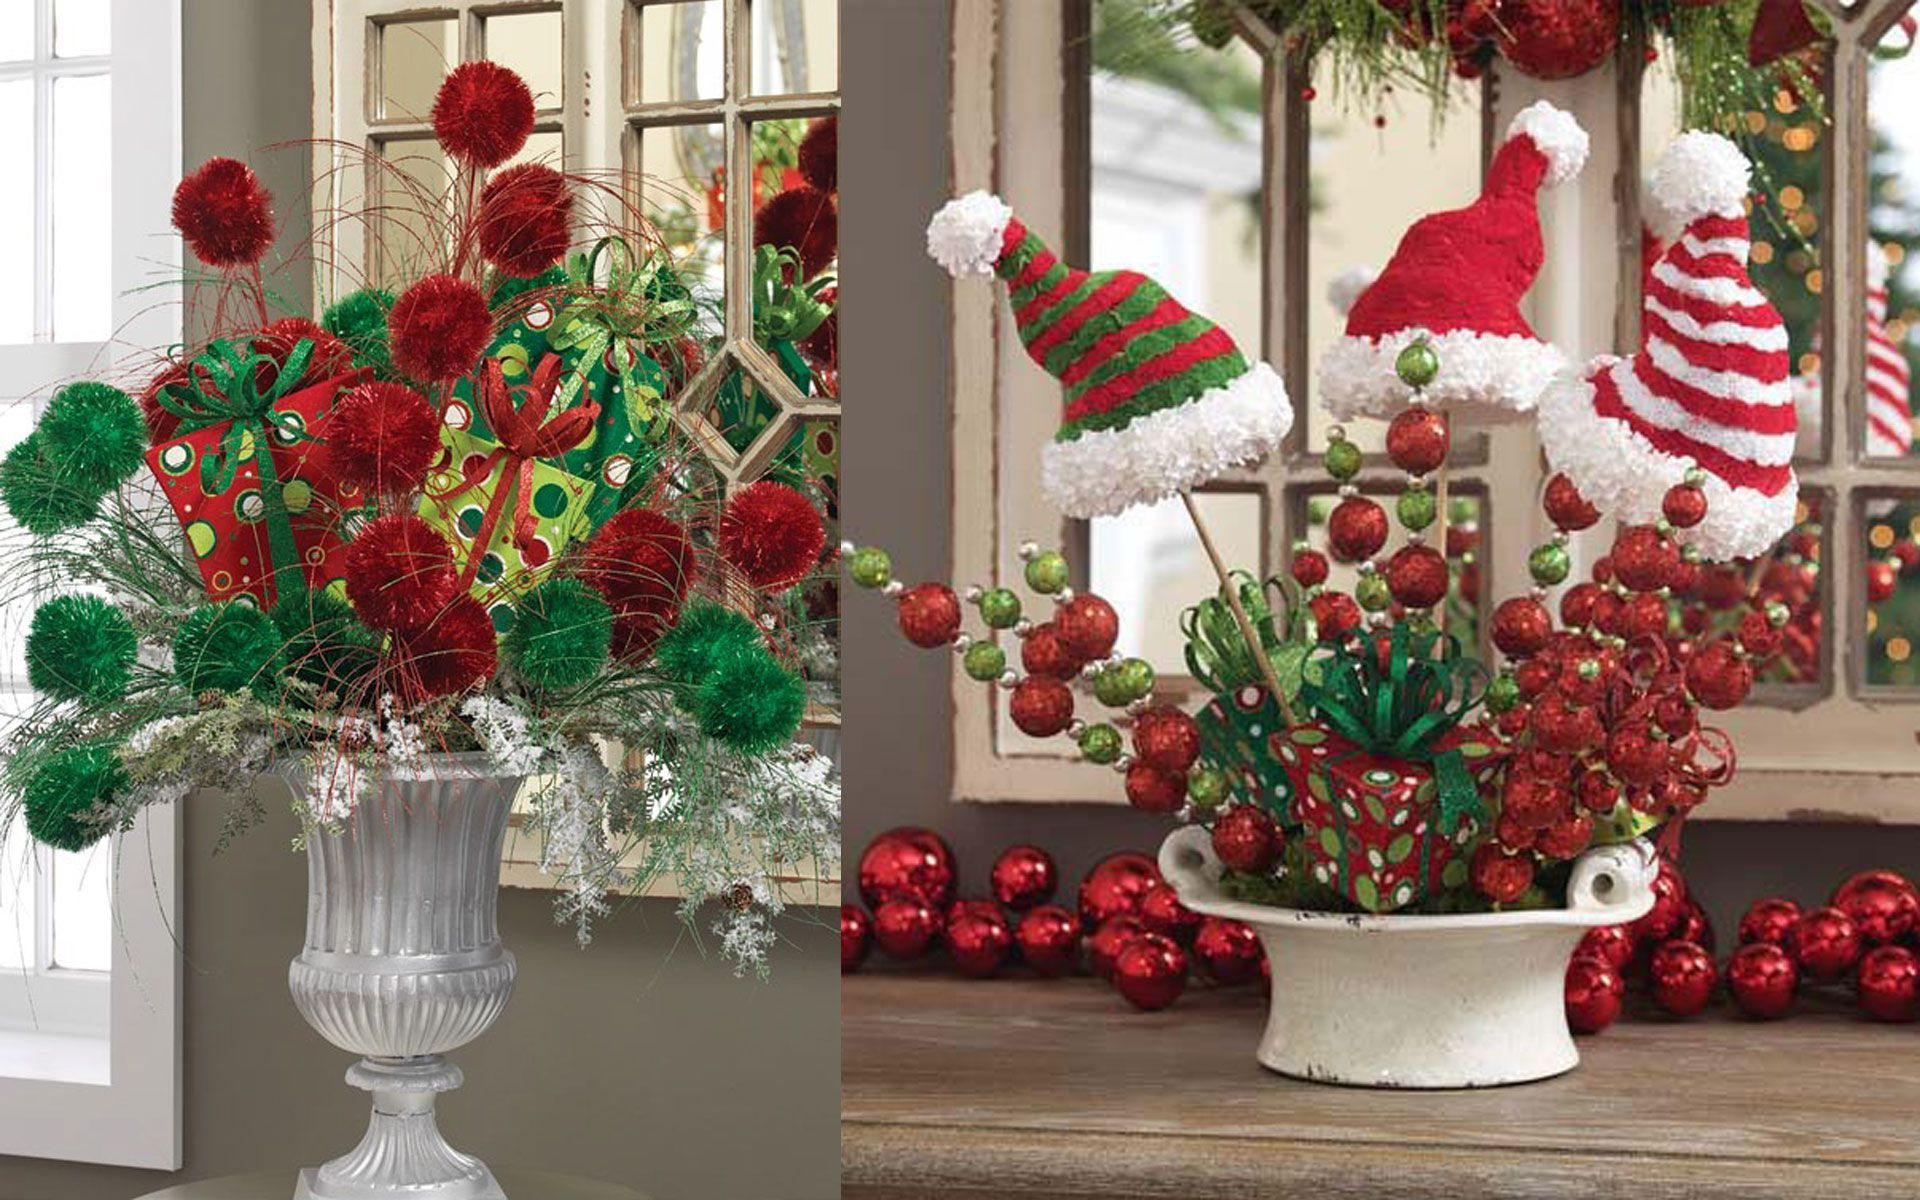 Window well decoration ideas  adorable decorating ideas for christmas with red green ball and